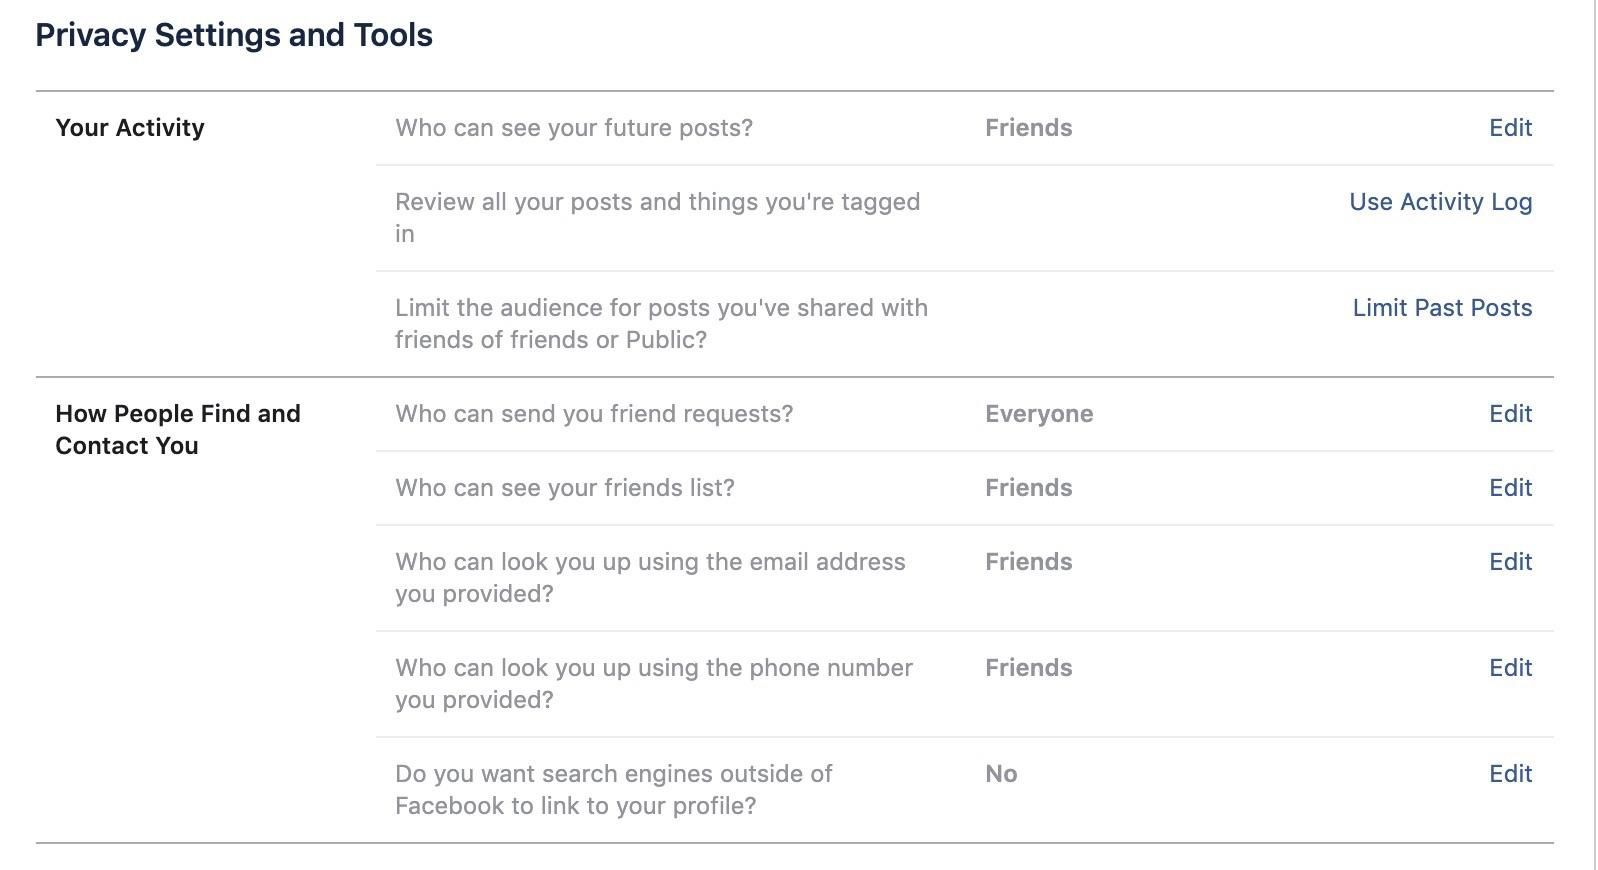 privacy-settings-and-tools